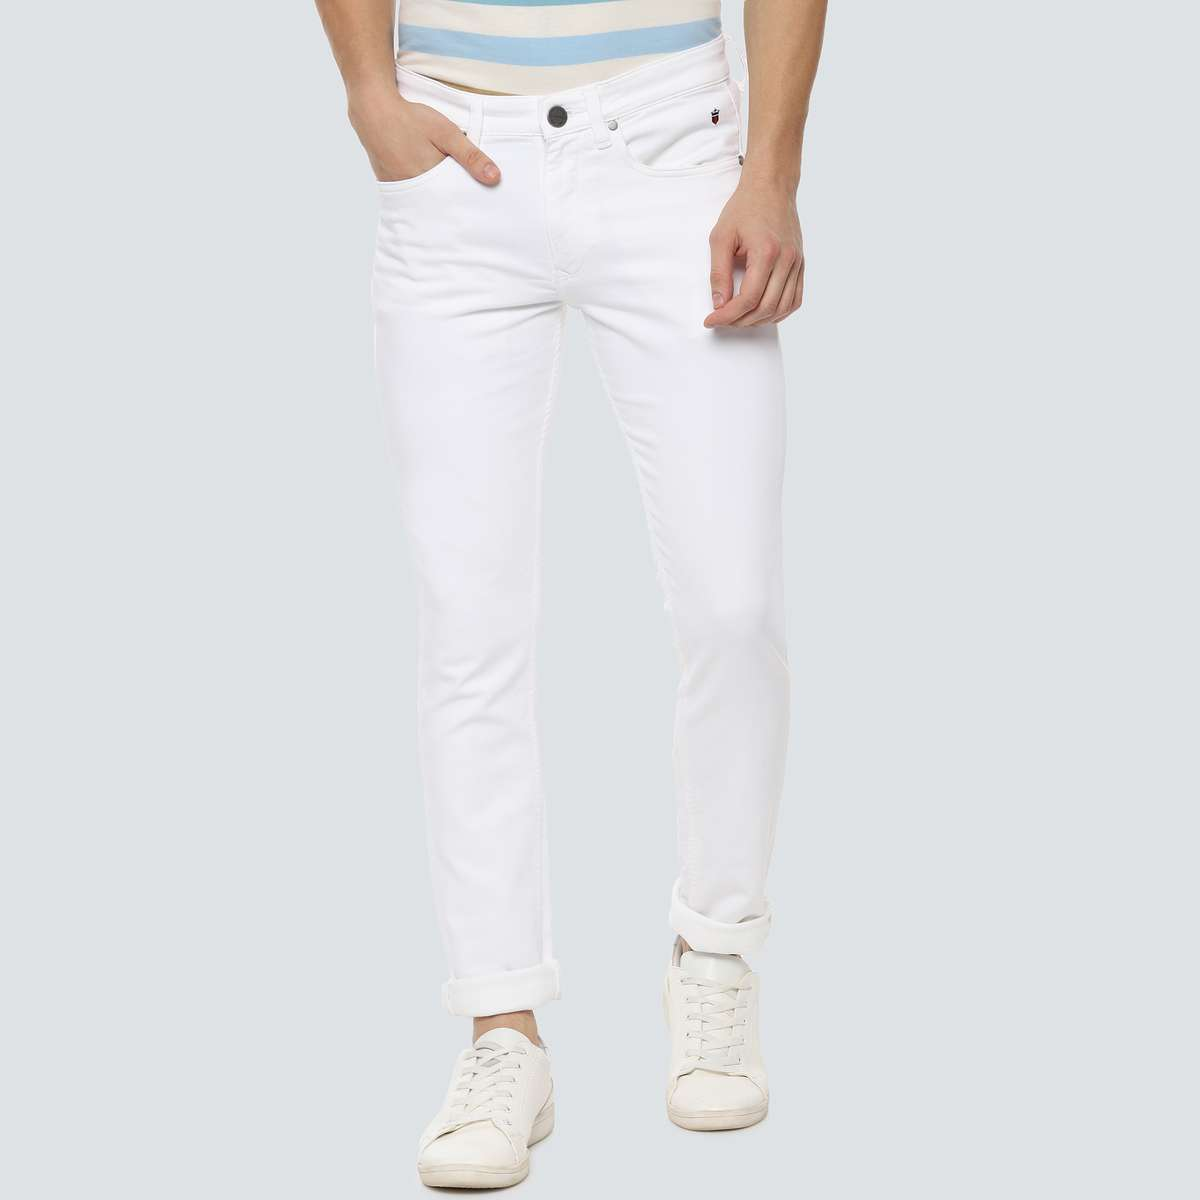 LP JEANS Solid Skinny Fit Jeans